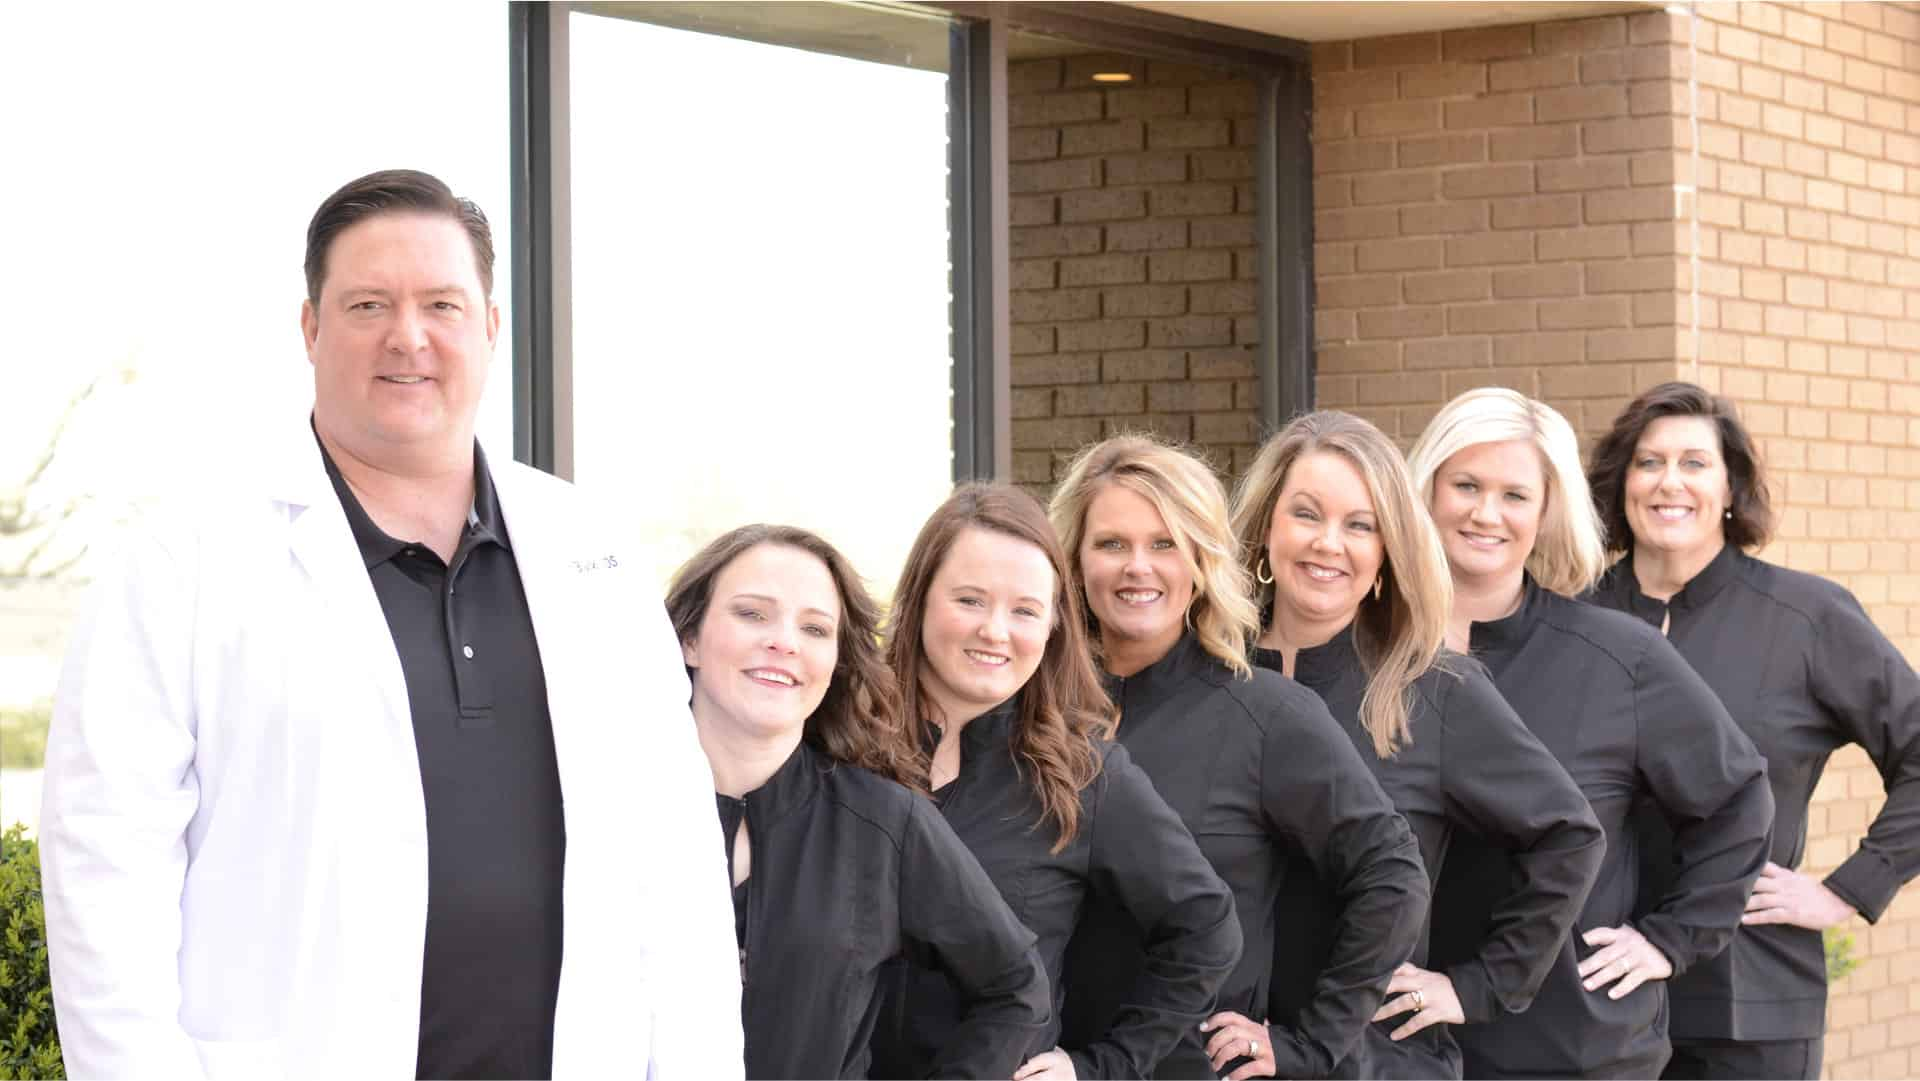 Visit The Dental Studio of South Tulsa | South Tulsa Dentist | Dr. Wesley Black